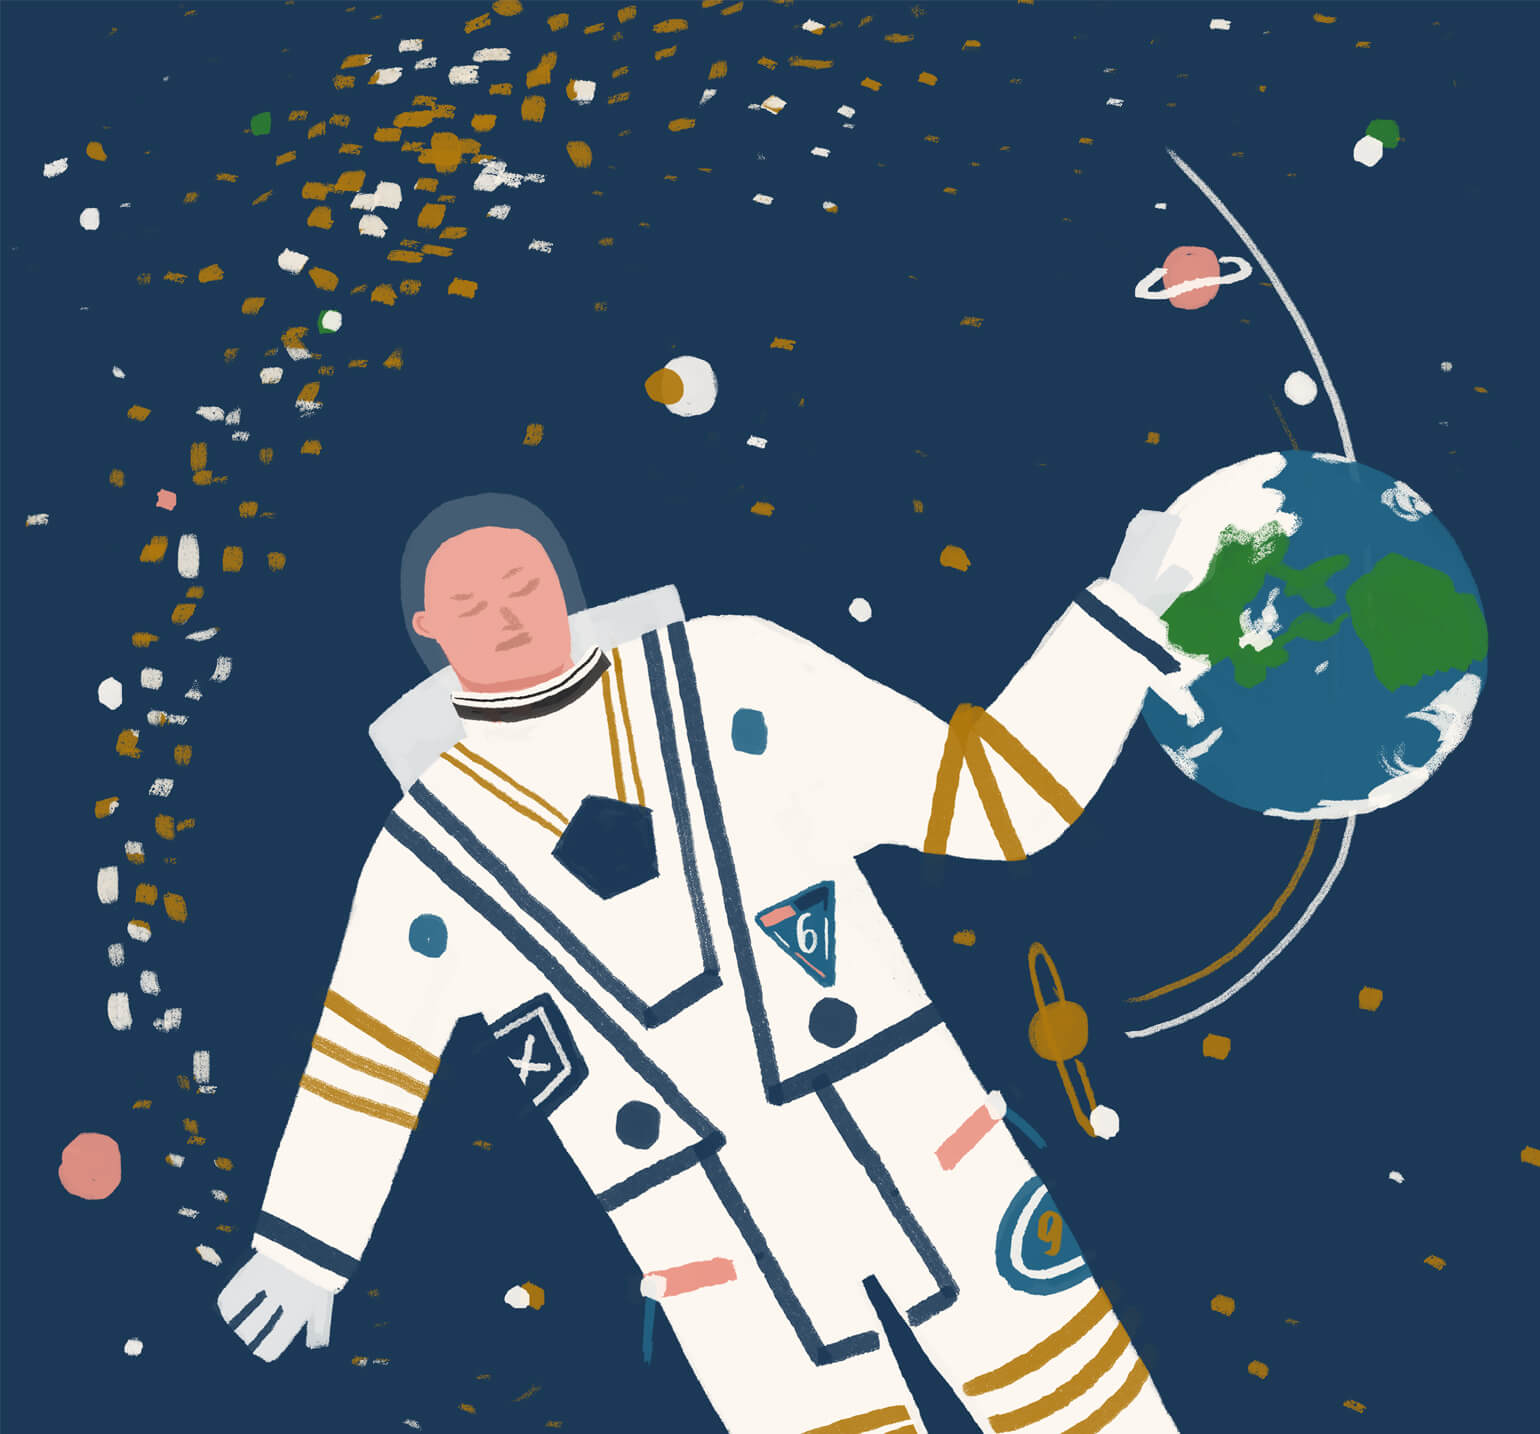 astronaut-scott-kelly-relate-zendesk-earth-violeta-noy